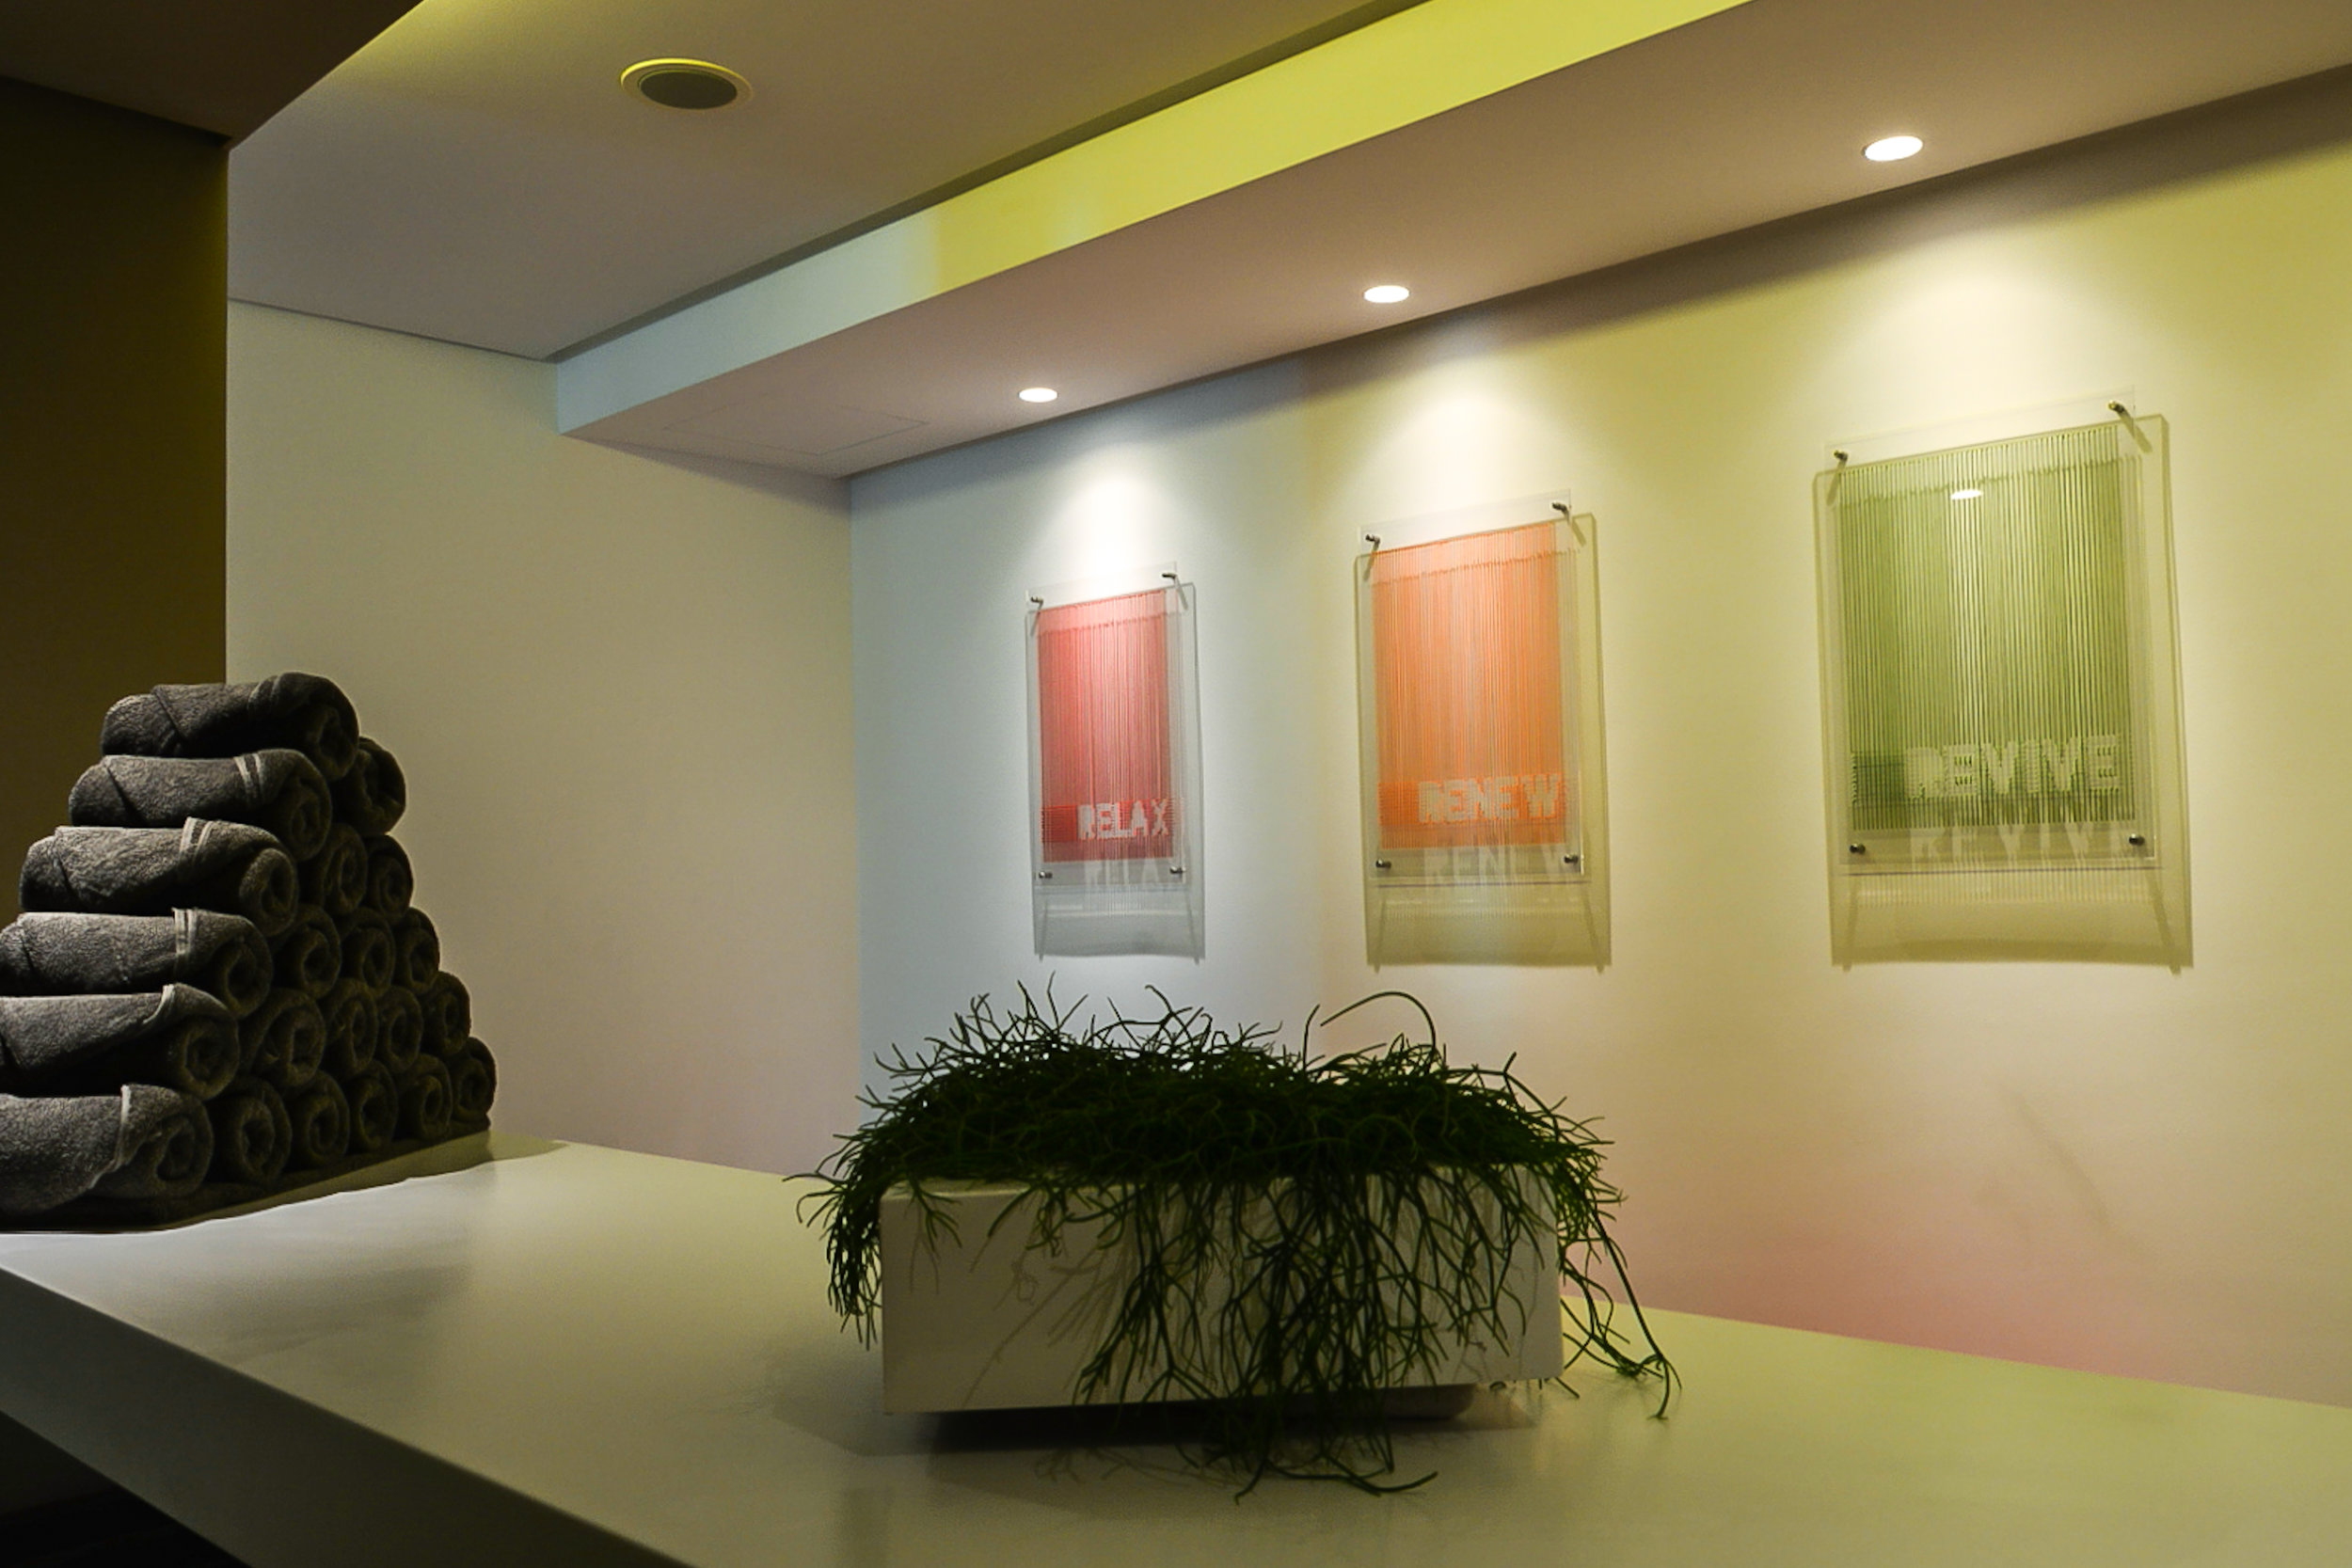 Relax, Renew, Revive on display in the spa at 72 by HUES